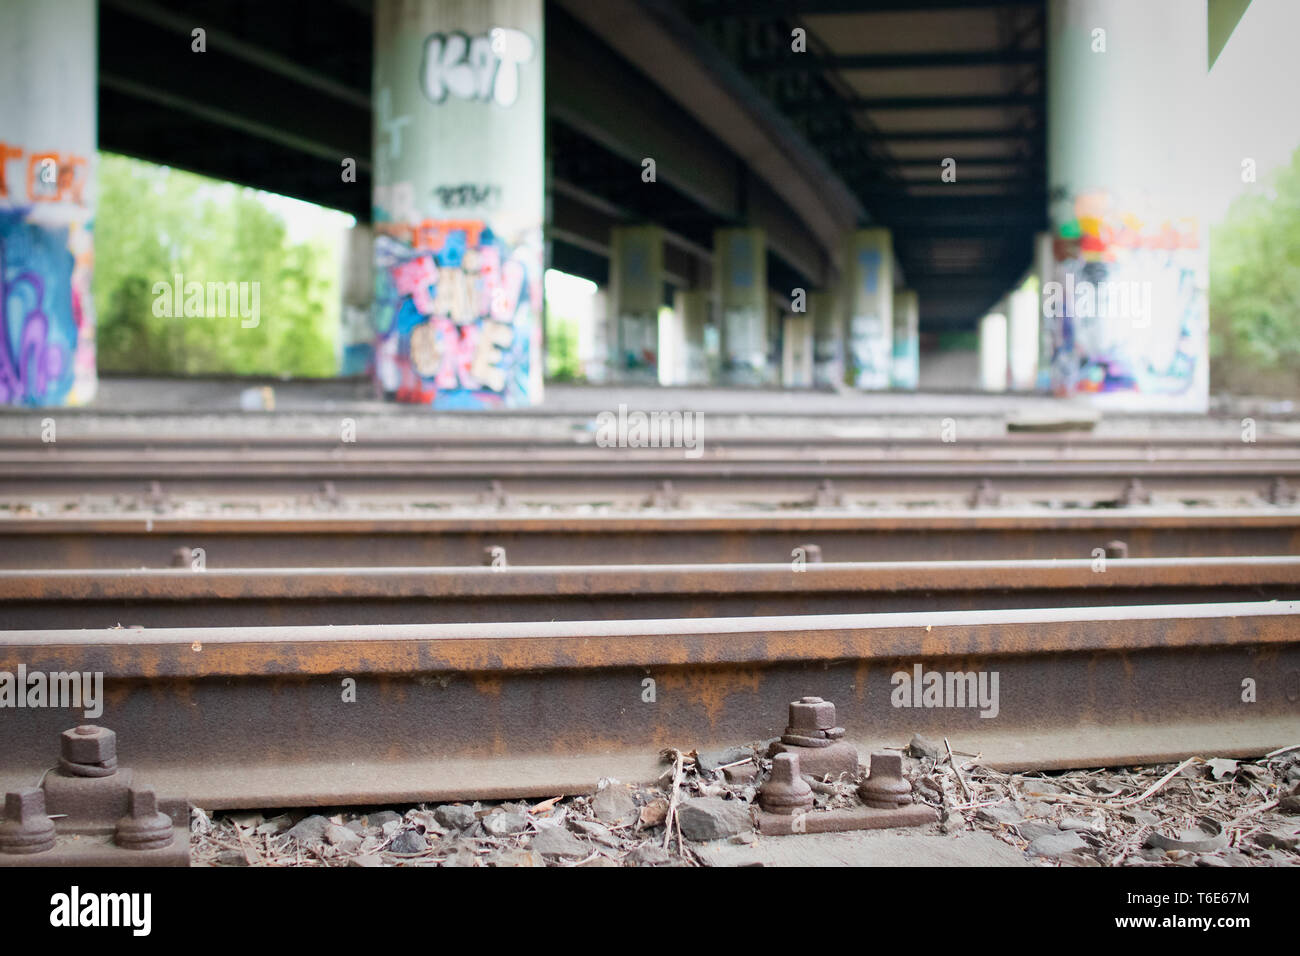 Old station, lost place in Dortmund, Germany - Stock Image